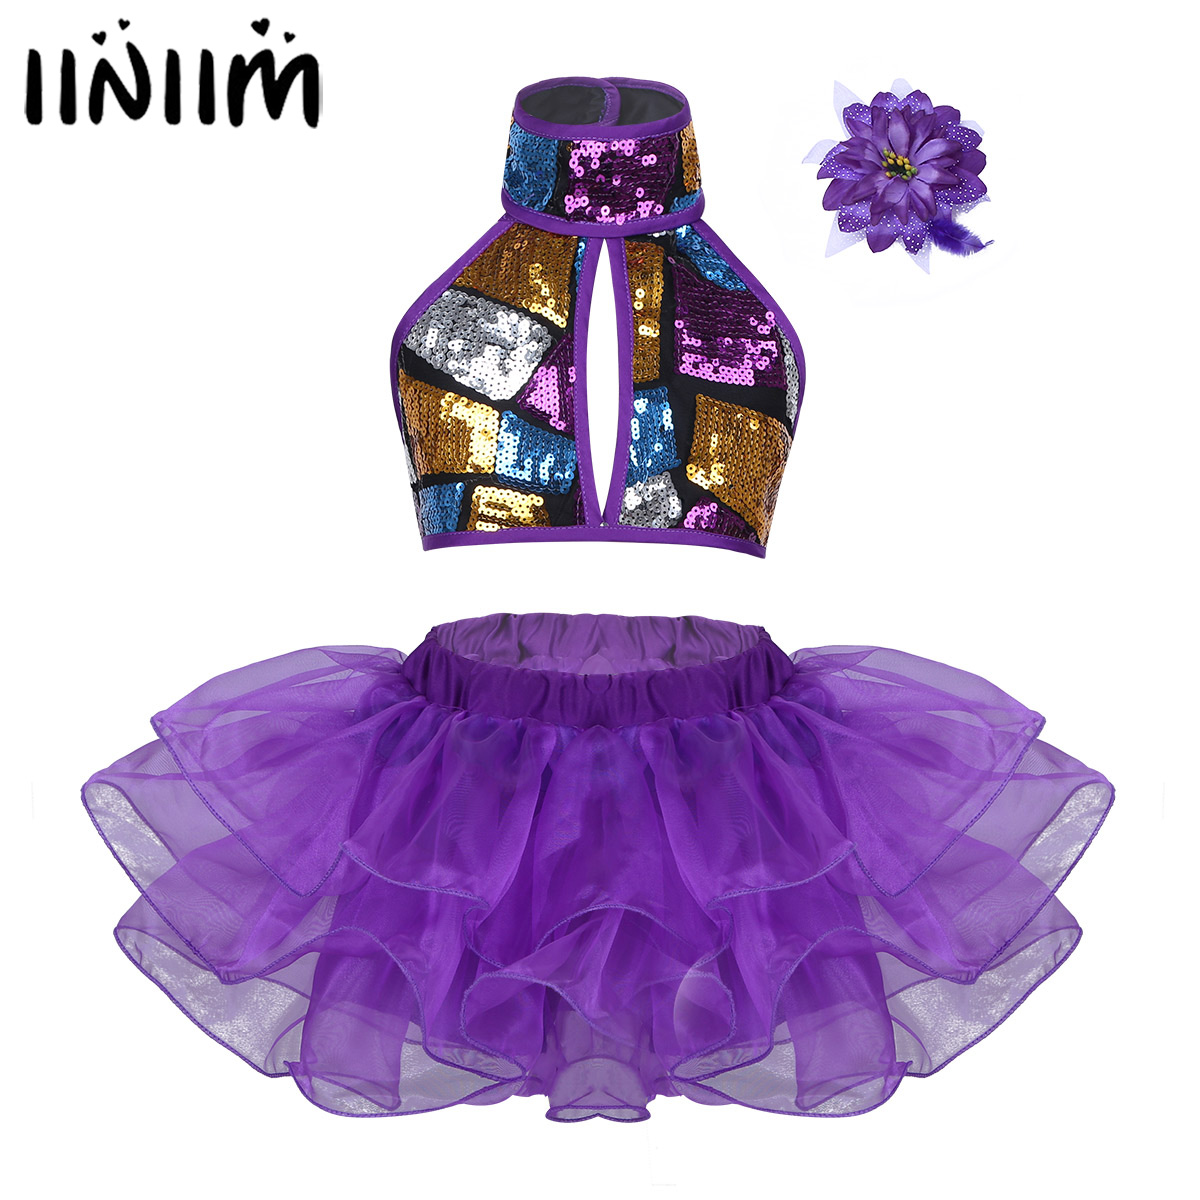 4aa5cc07f9 Detail Feedback Questions about Beautiful Girls Tutu Dance Costumes  Ballroom Dancing Halter Shiny Sequins Crop Top with Skirts Hair Clip Ballet  Jazz ...